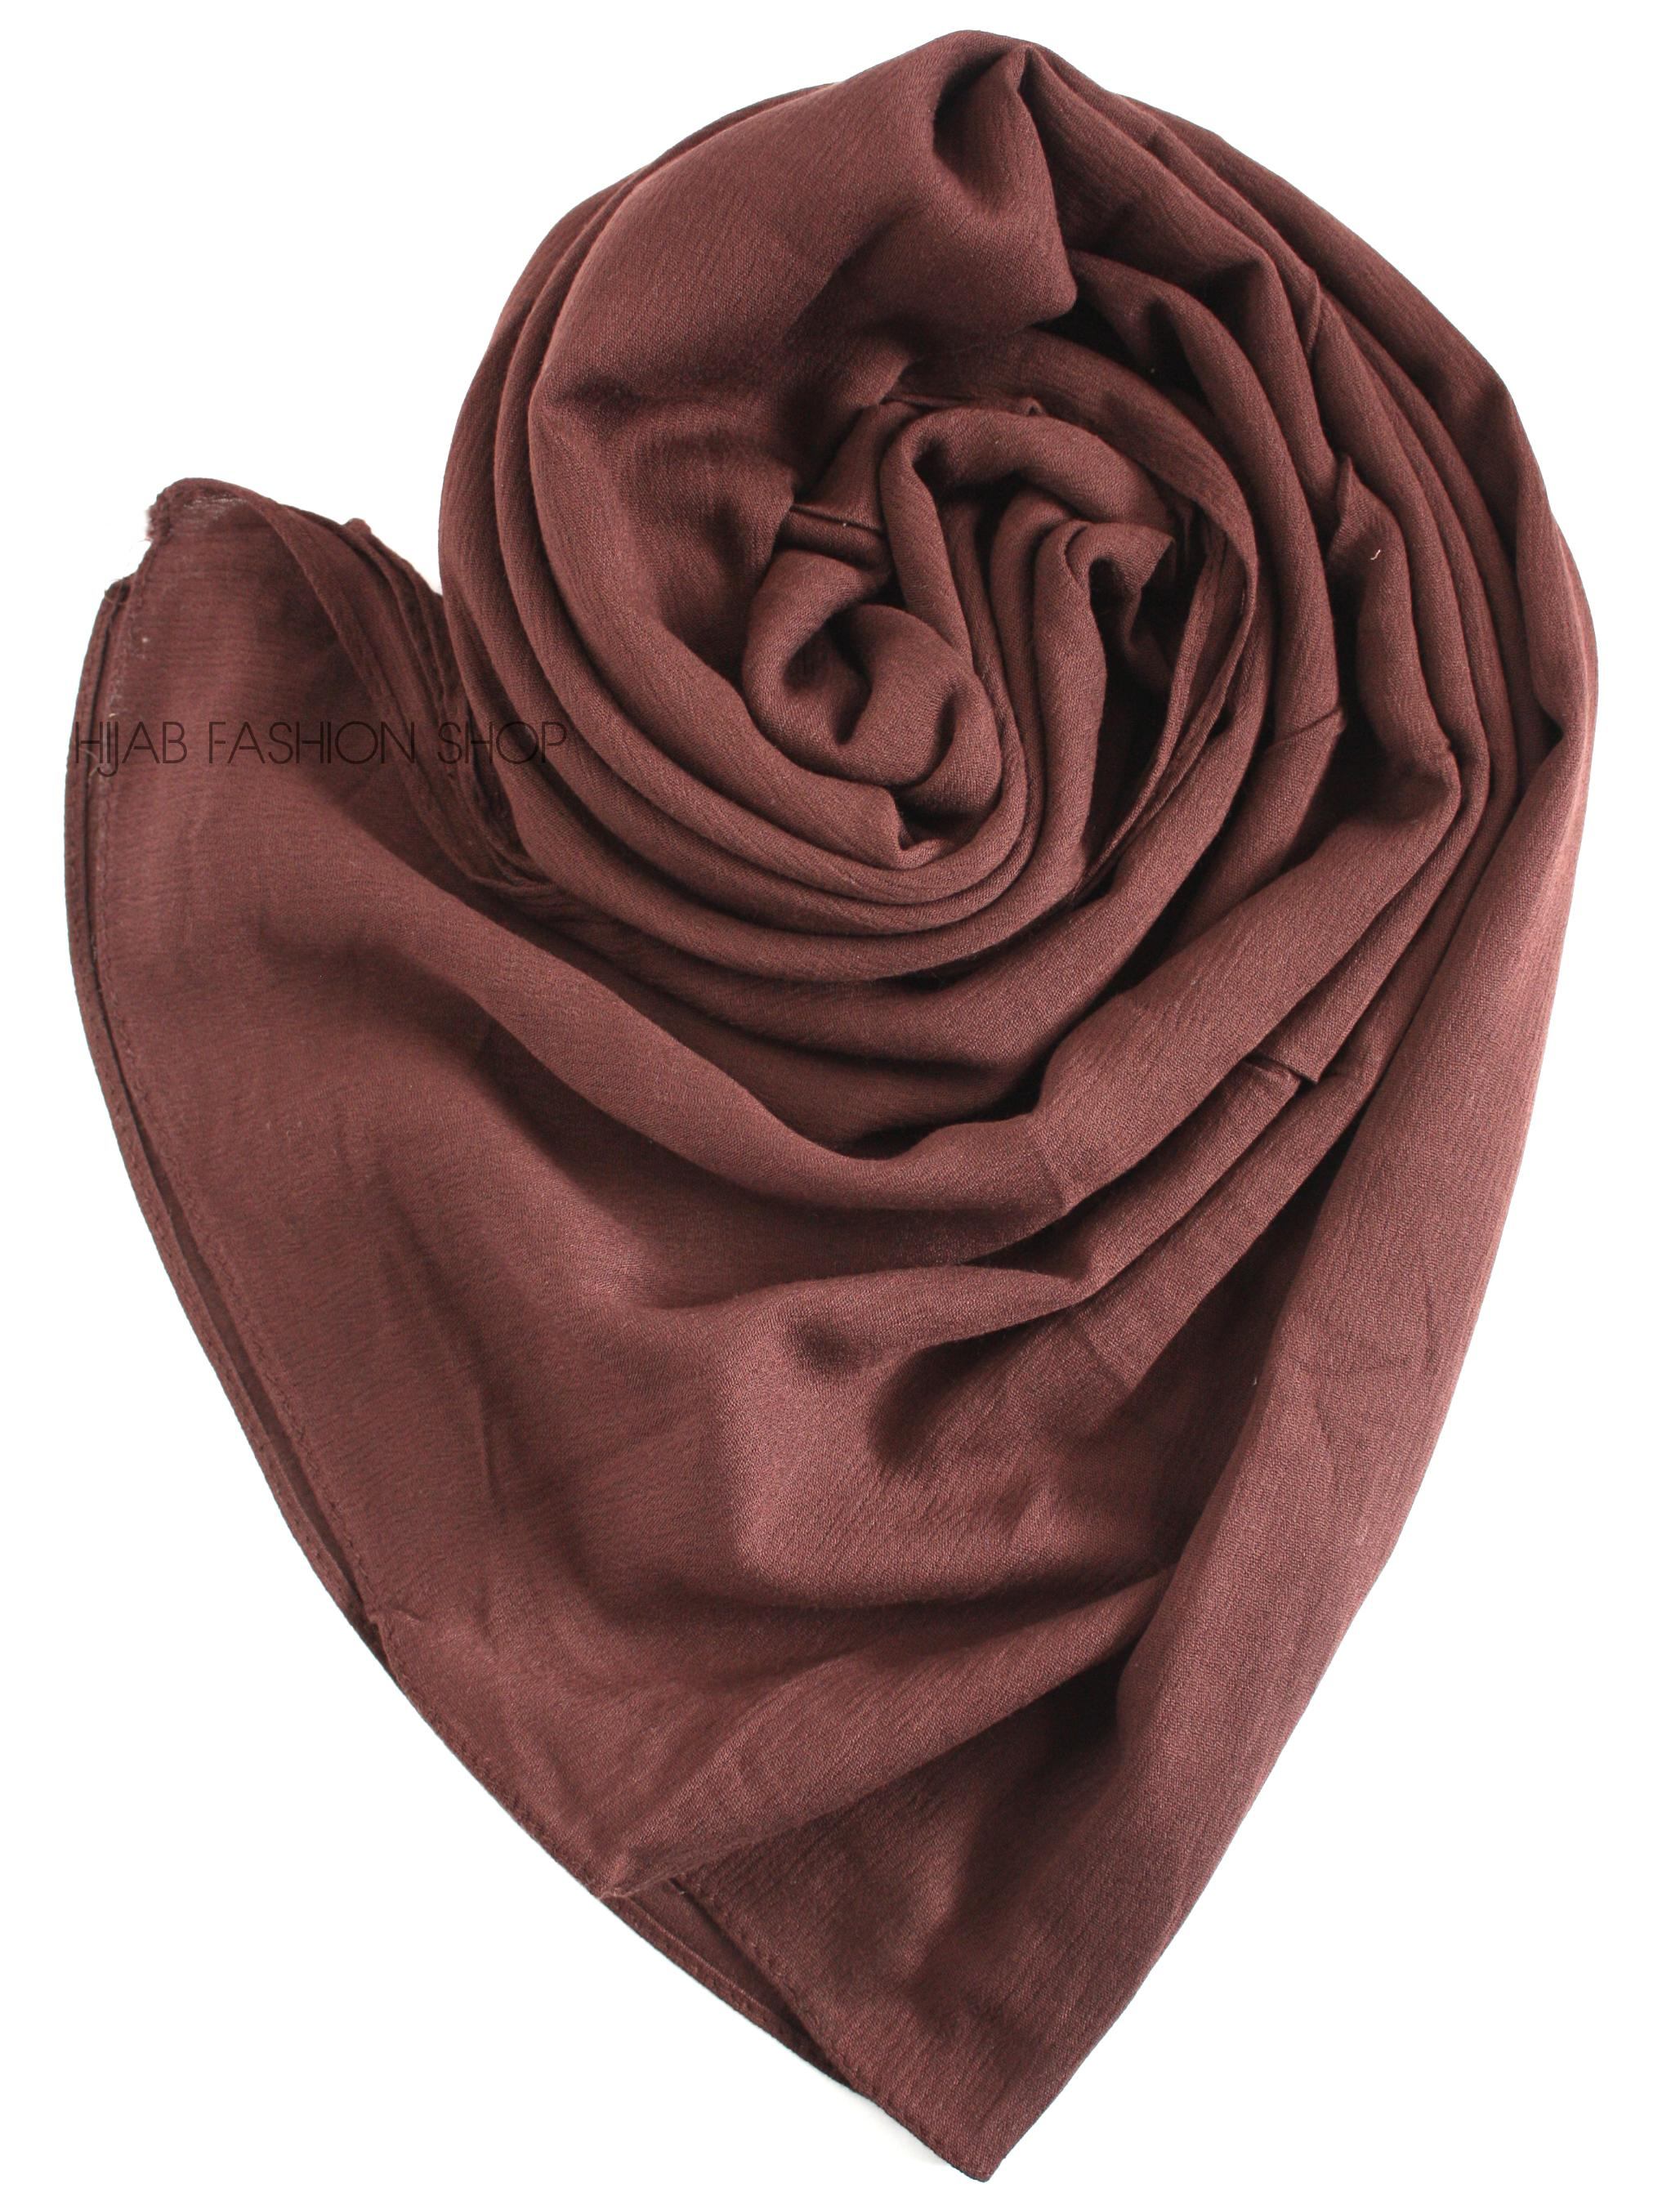 chocolate brown rayon crinkle hijab